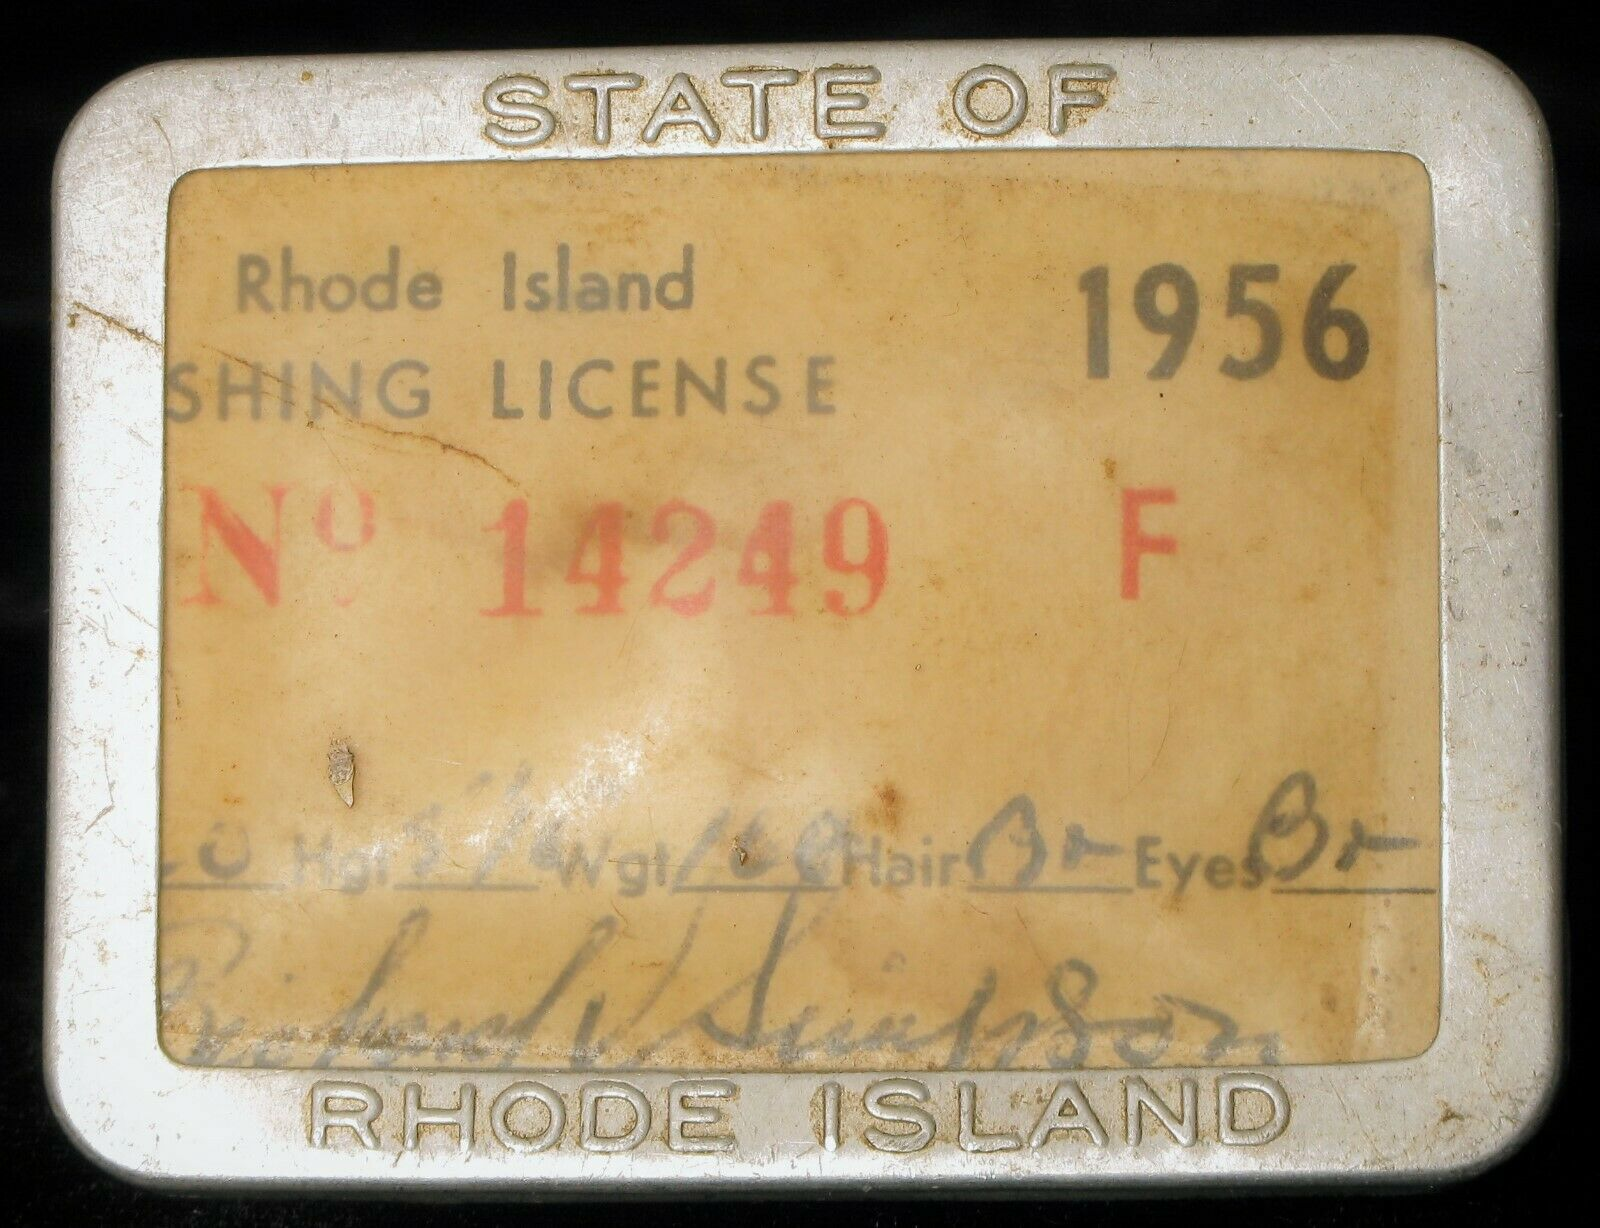 ANTIQUE 1950'S RI RHODE ISLAND FISHING LICENSE SPORTSMAN OUTDOOR PIN 3 TAGS